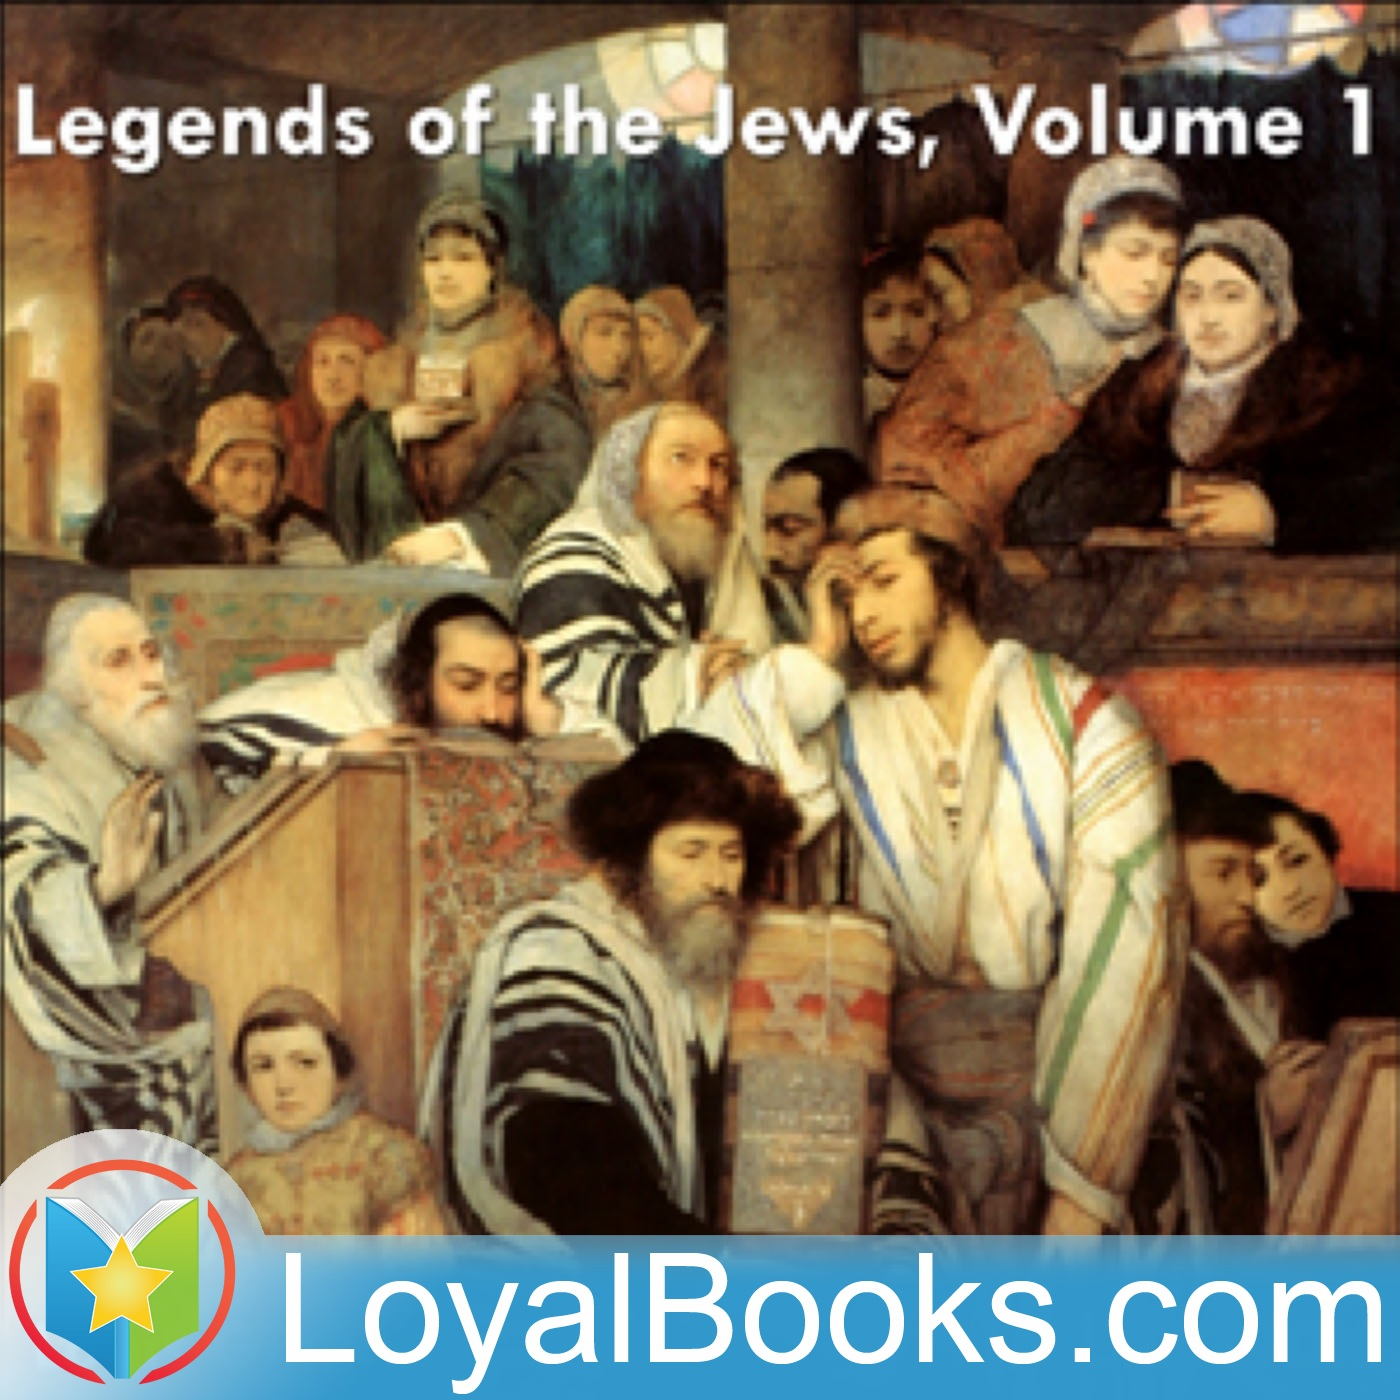 <![CDATA[Legends of the Jews by Louis Ginzberg]]>